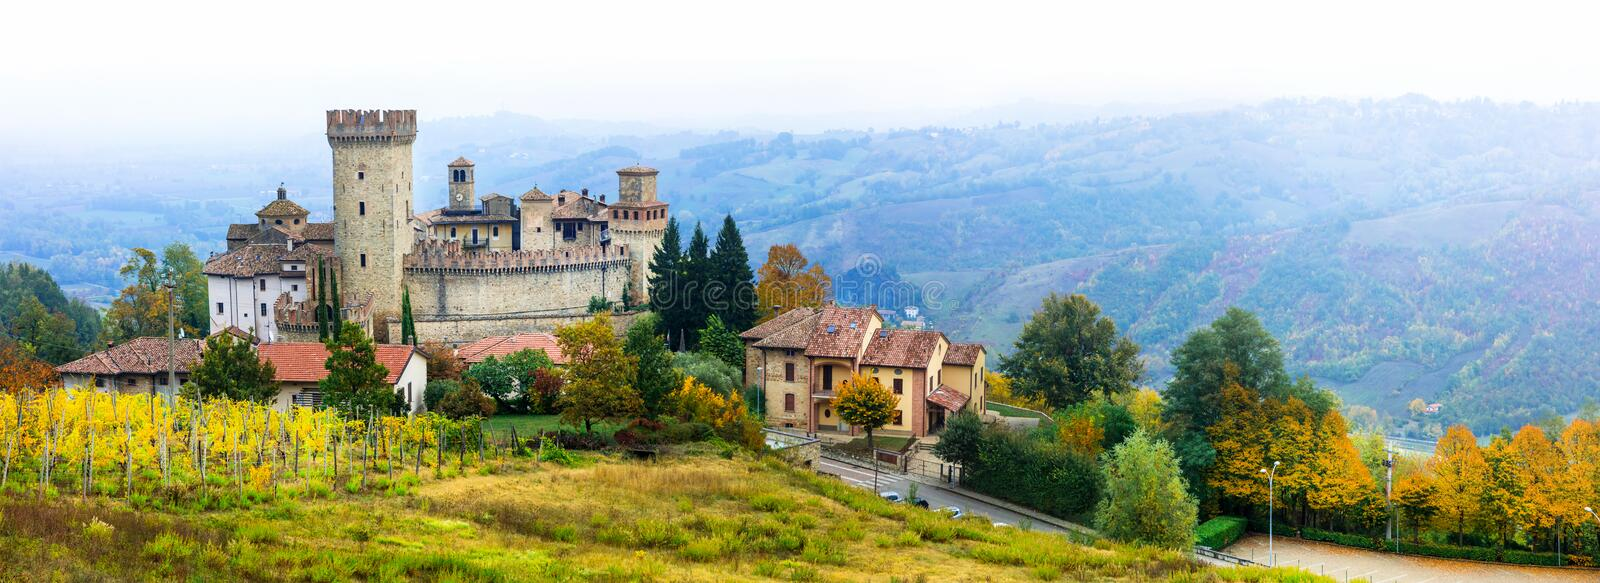 Medieval village borgo Vigoleno with well preserved castle in. Impressive Vigoleno village,Panoramic view,Italy stock images